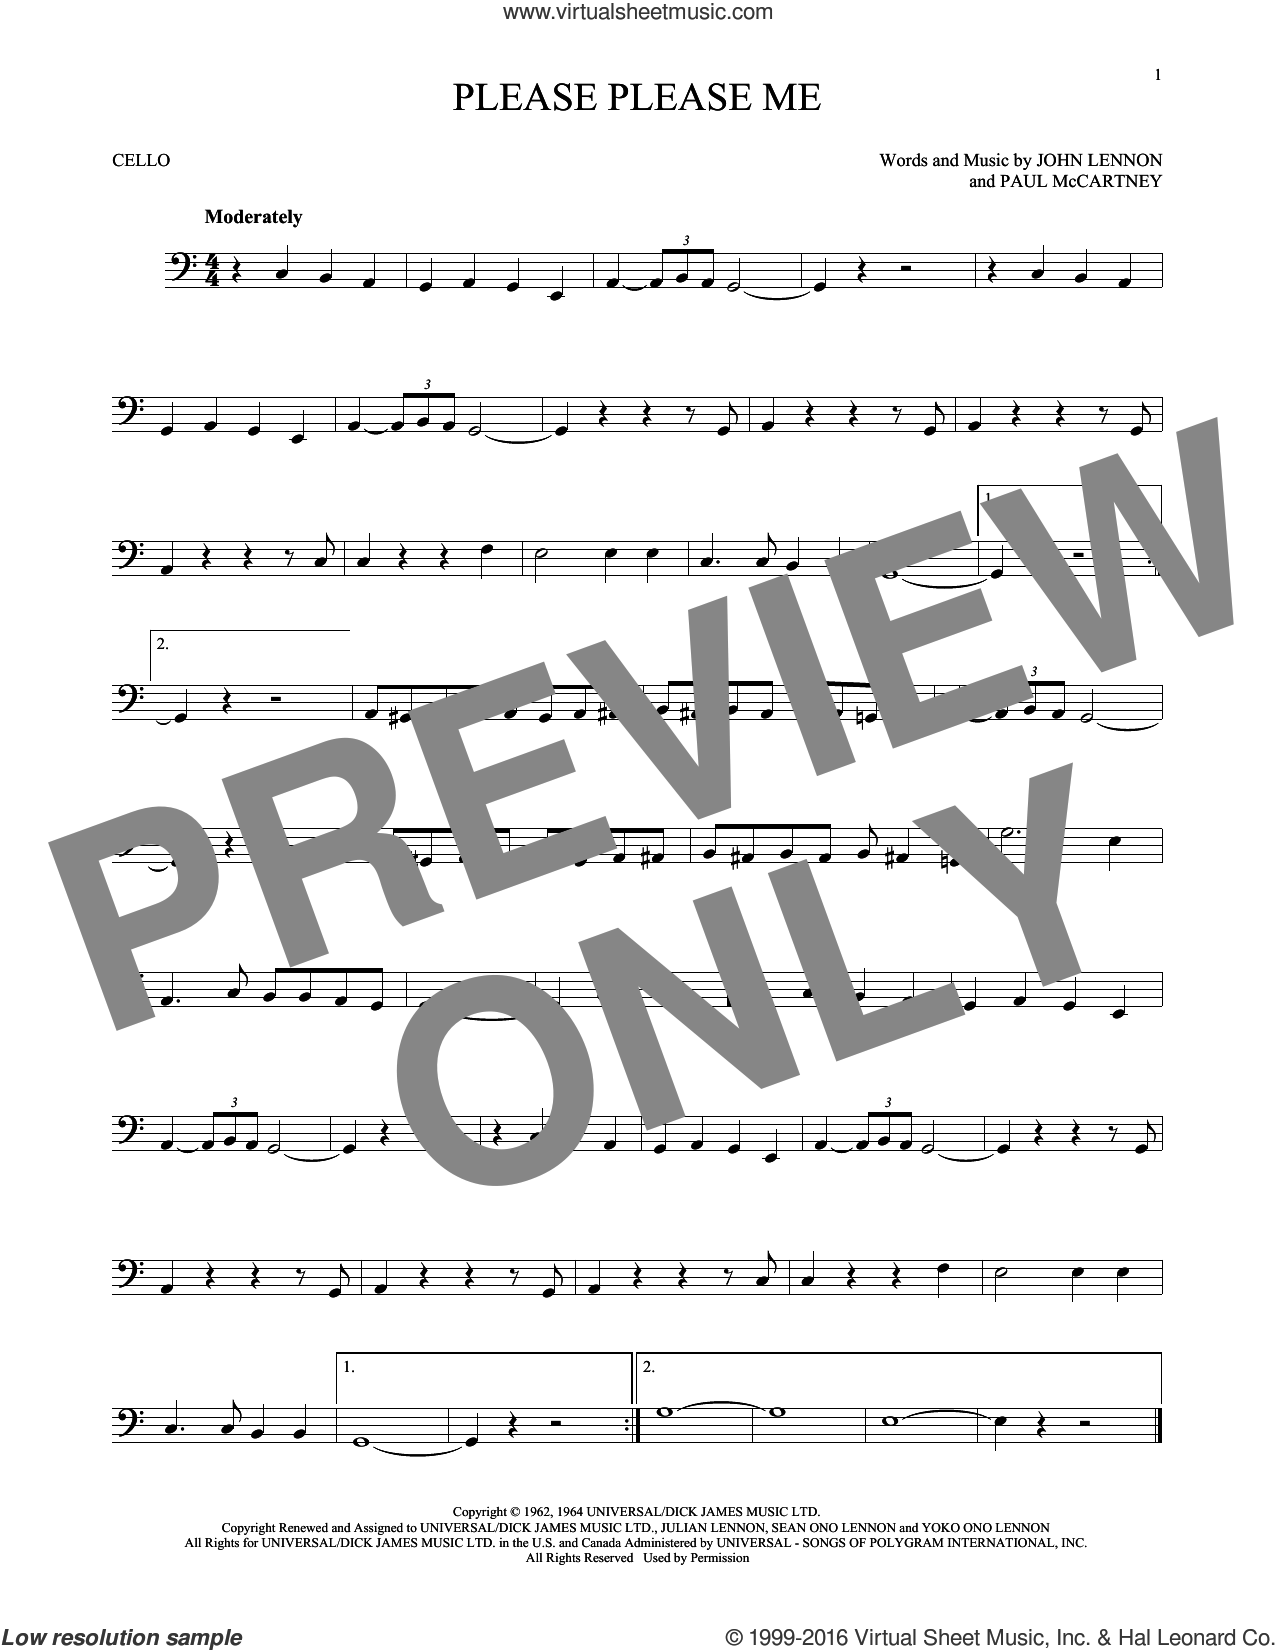 Please Please Me sheet music for cello solo by The Beatles, John Lennon and Paul McCartney. Score Image Preview.